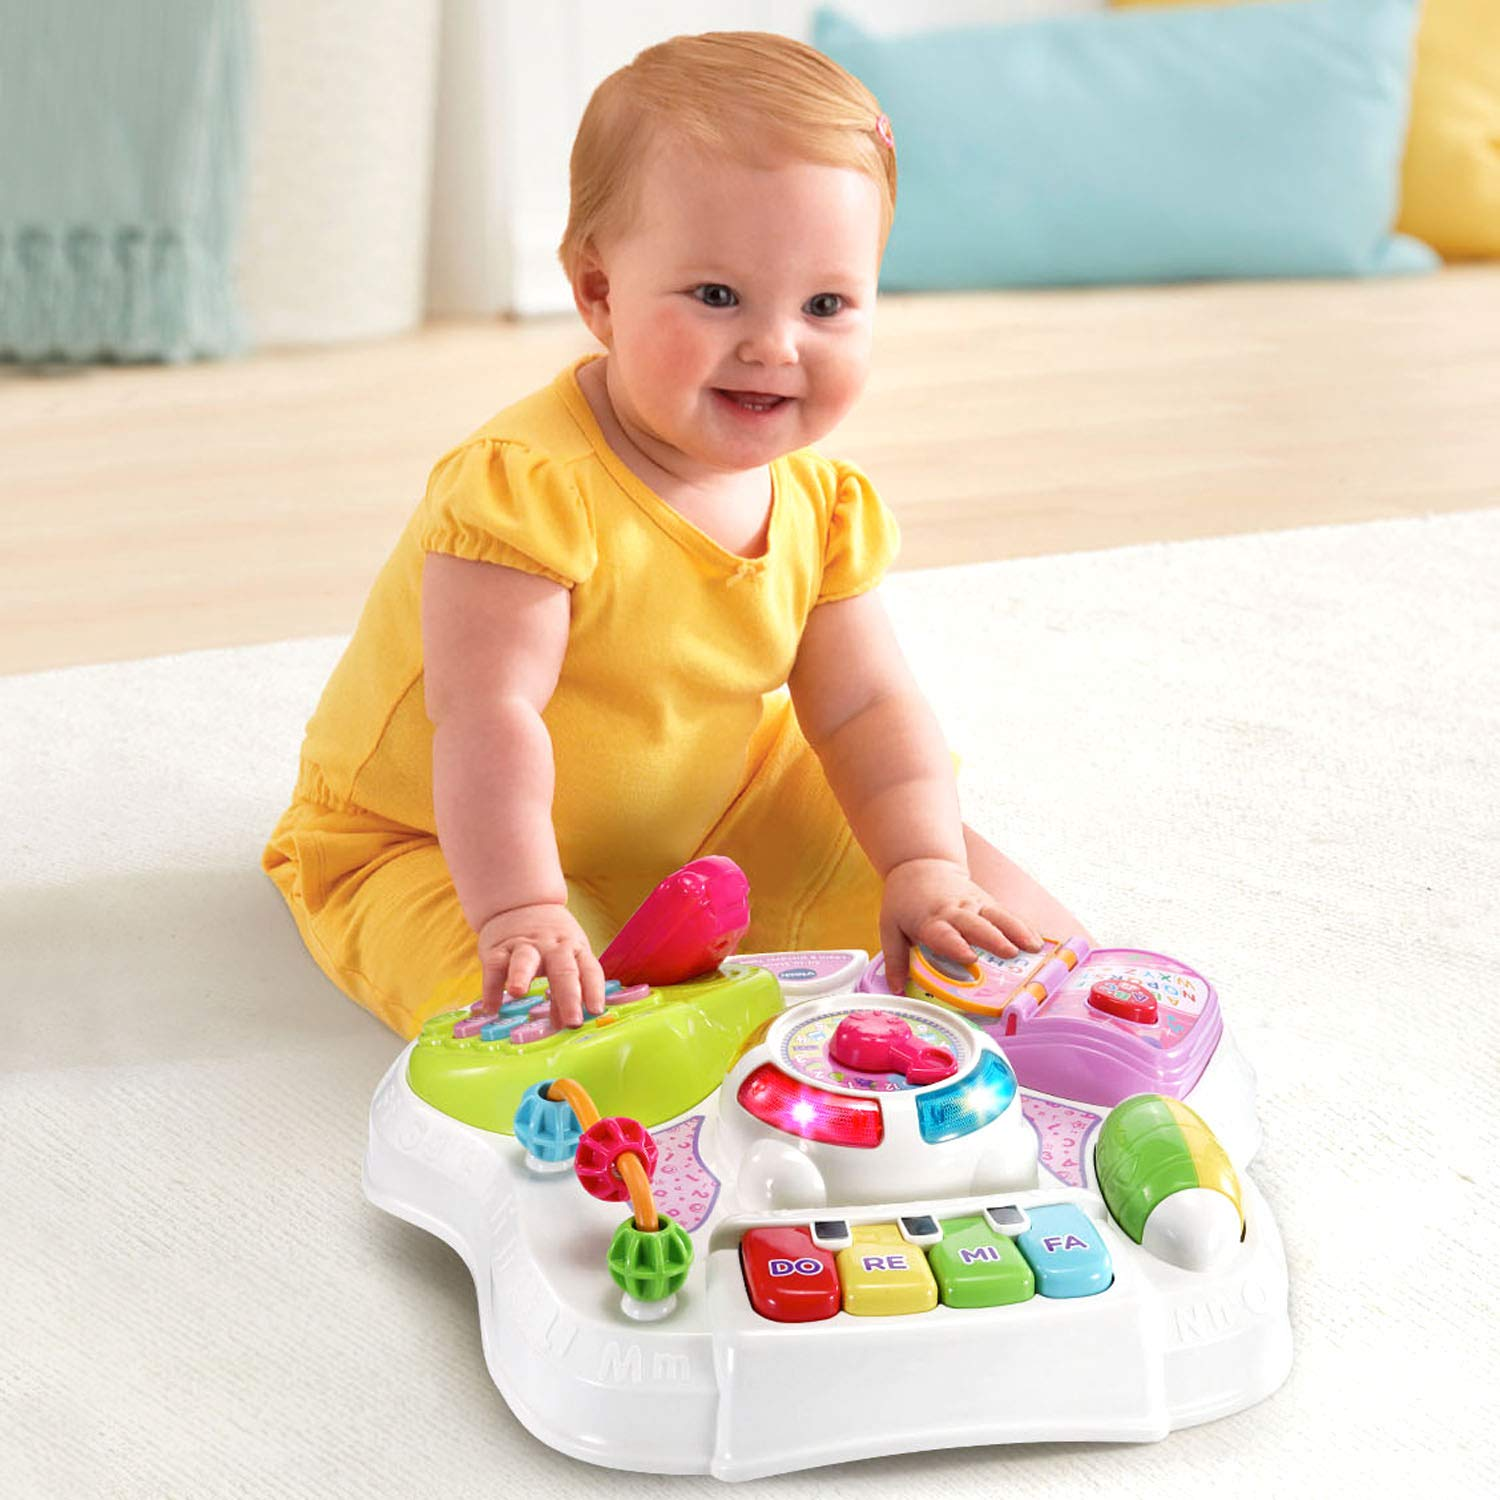 VTech Sit-To-Stand Learn & Discover Table, Pink by VTech (Image #4)